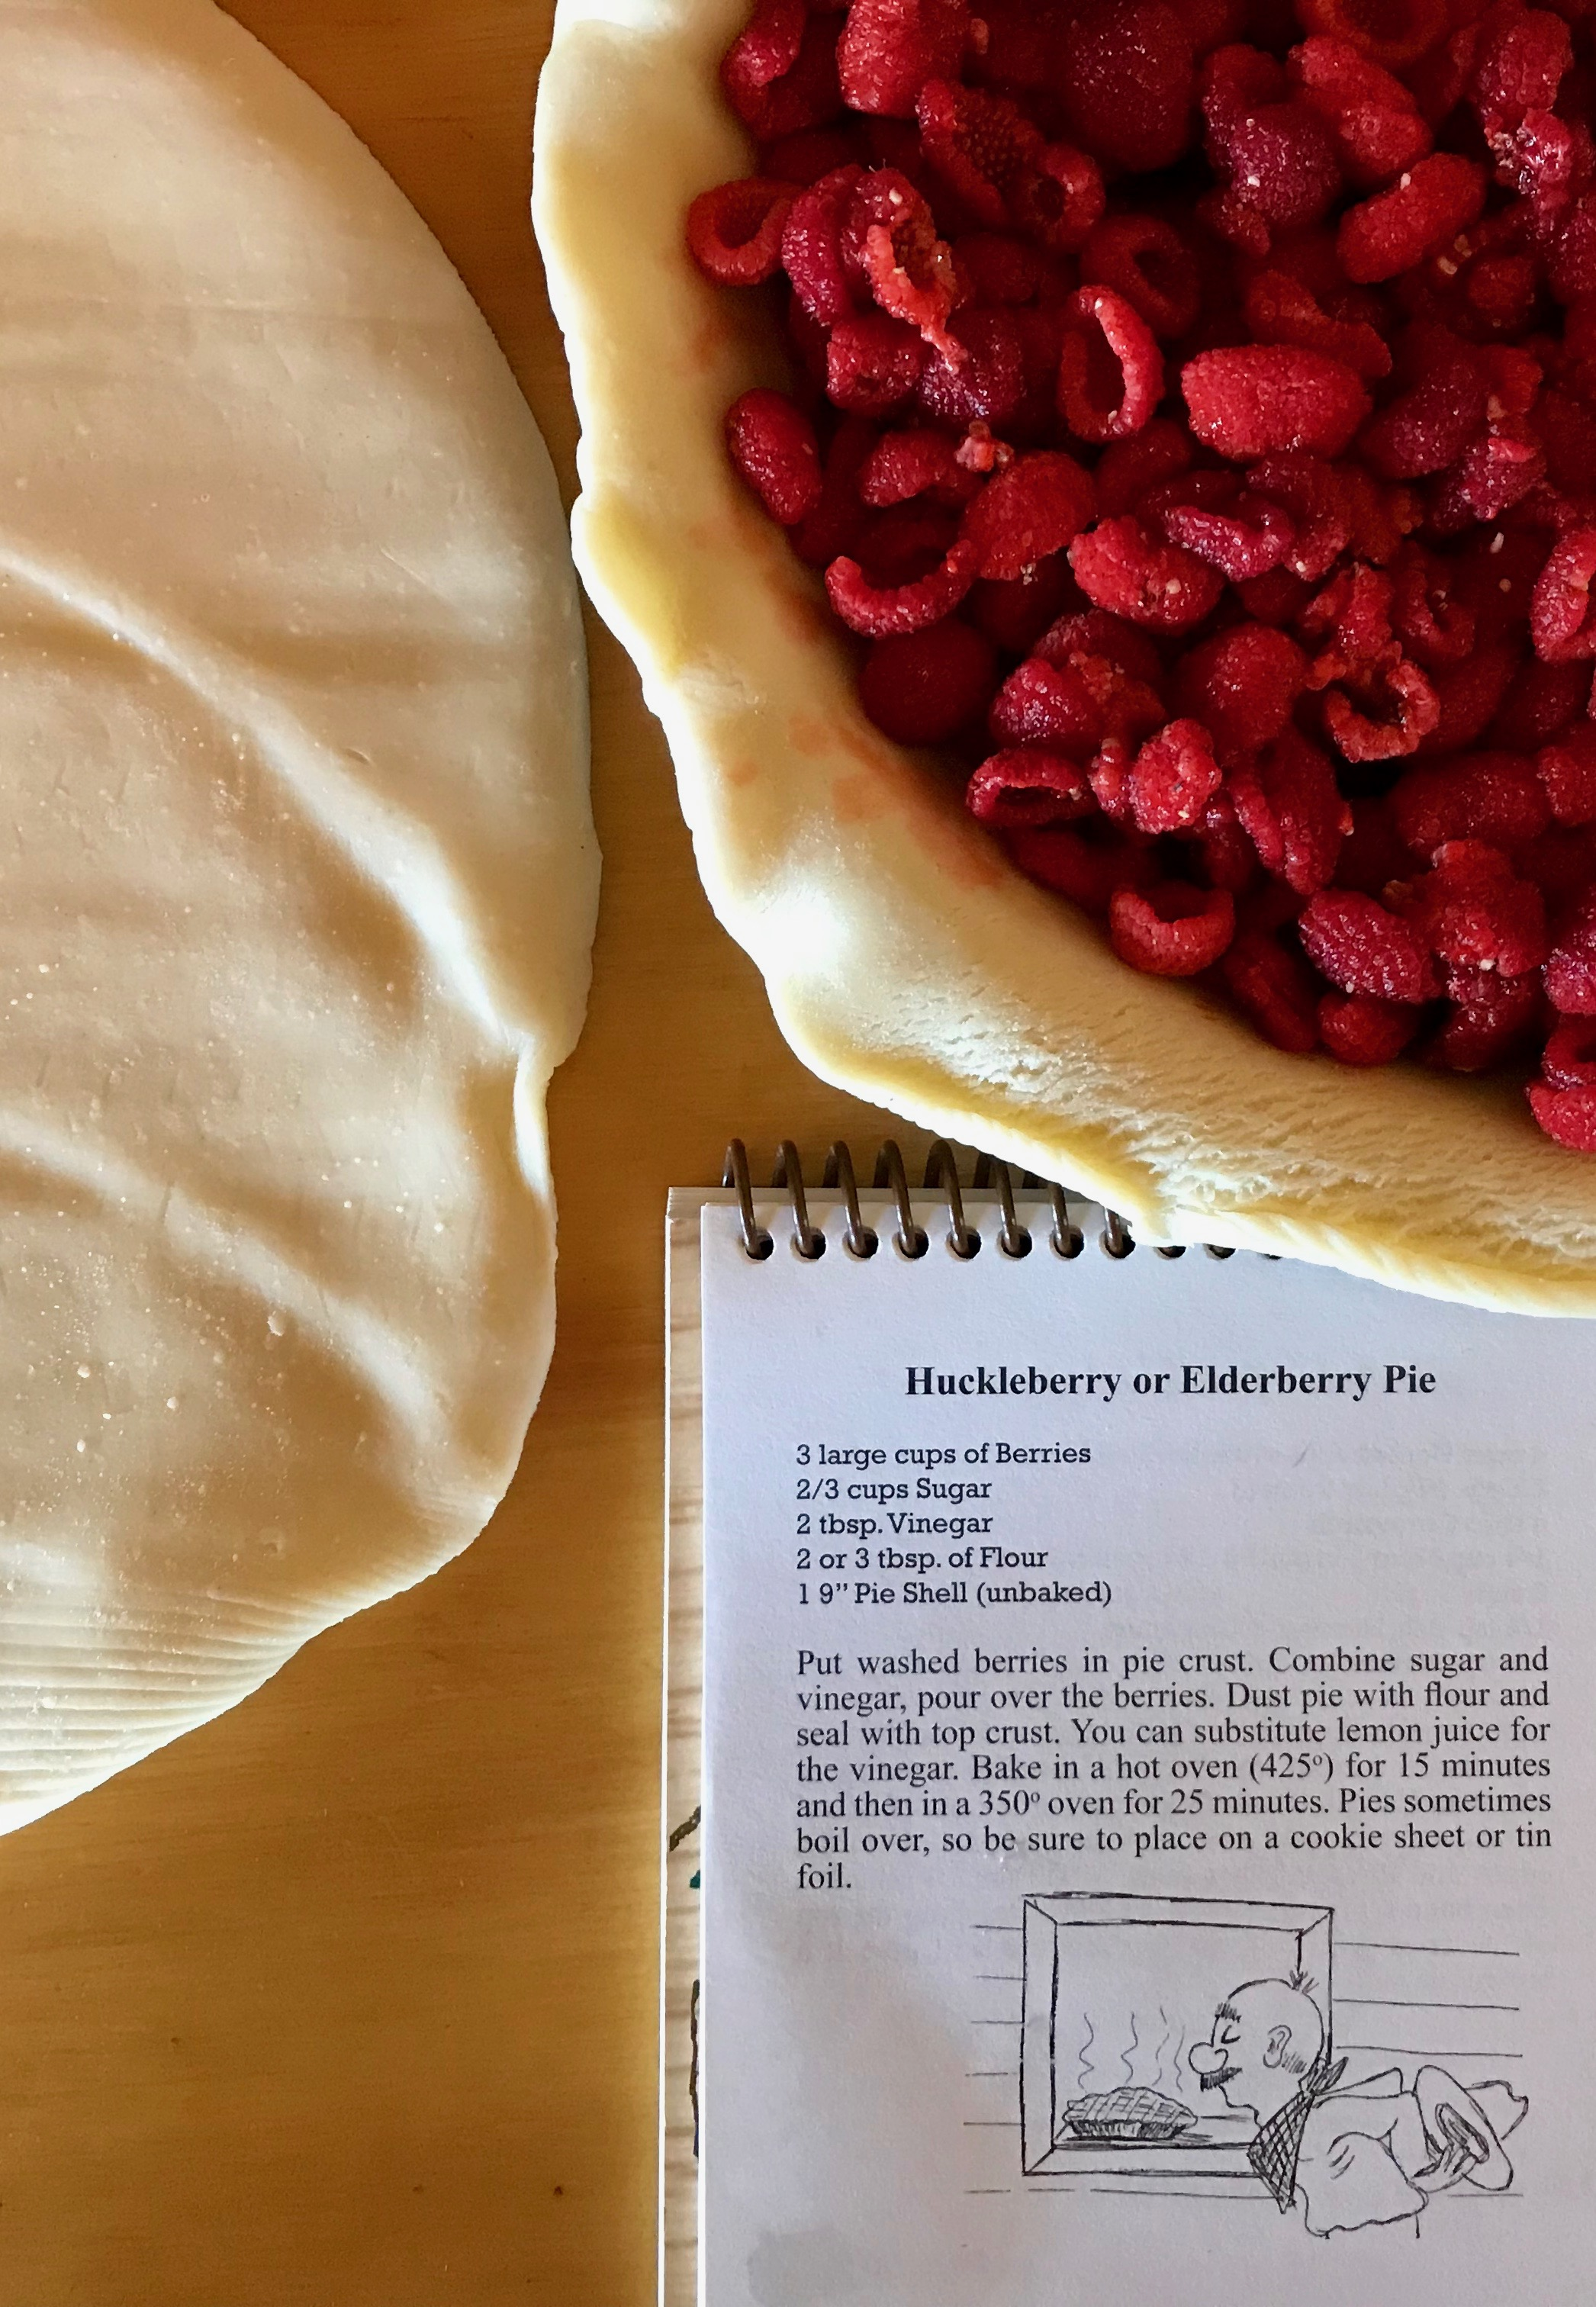 Thimbleberry pie making.jpeg